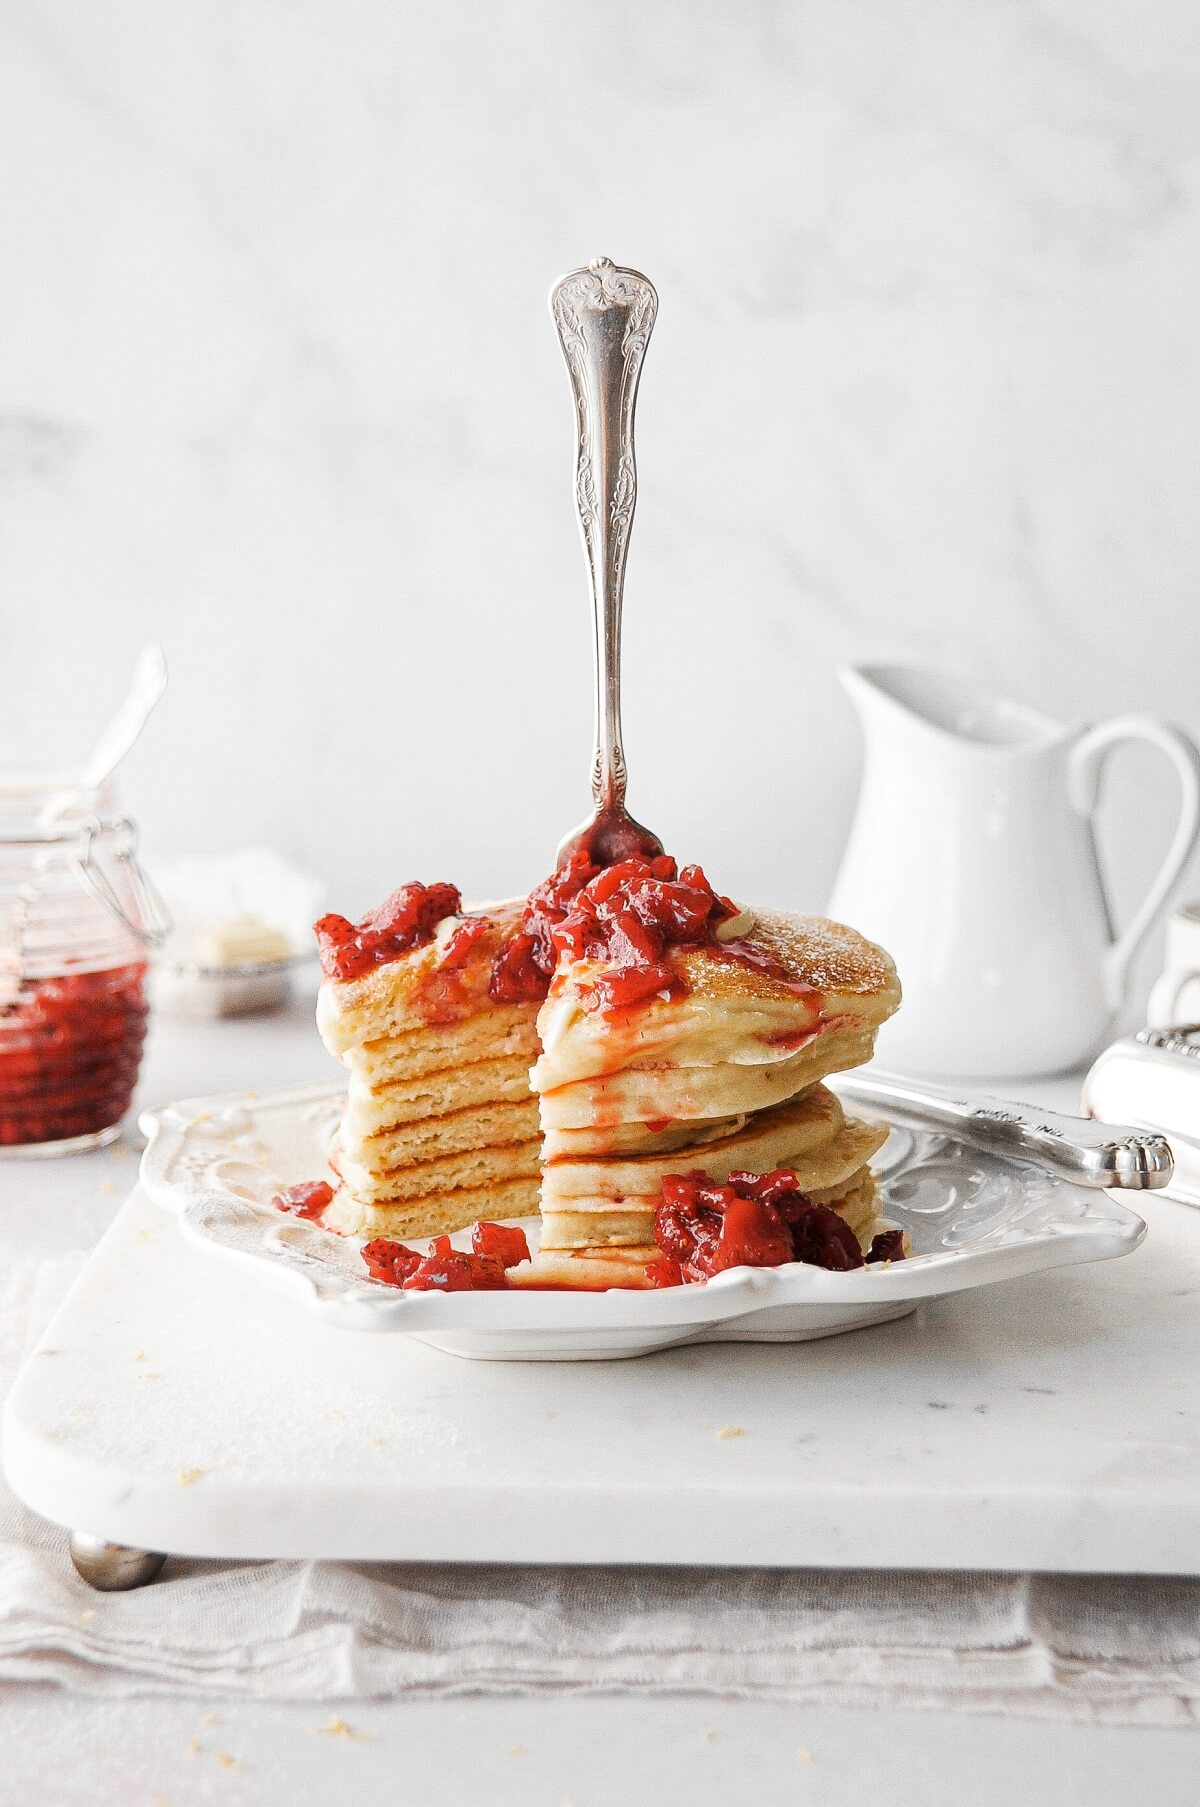 Lemon ricotta pancakes topped with strawberry sauce.